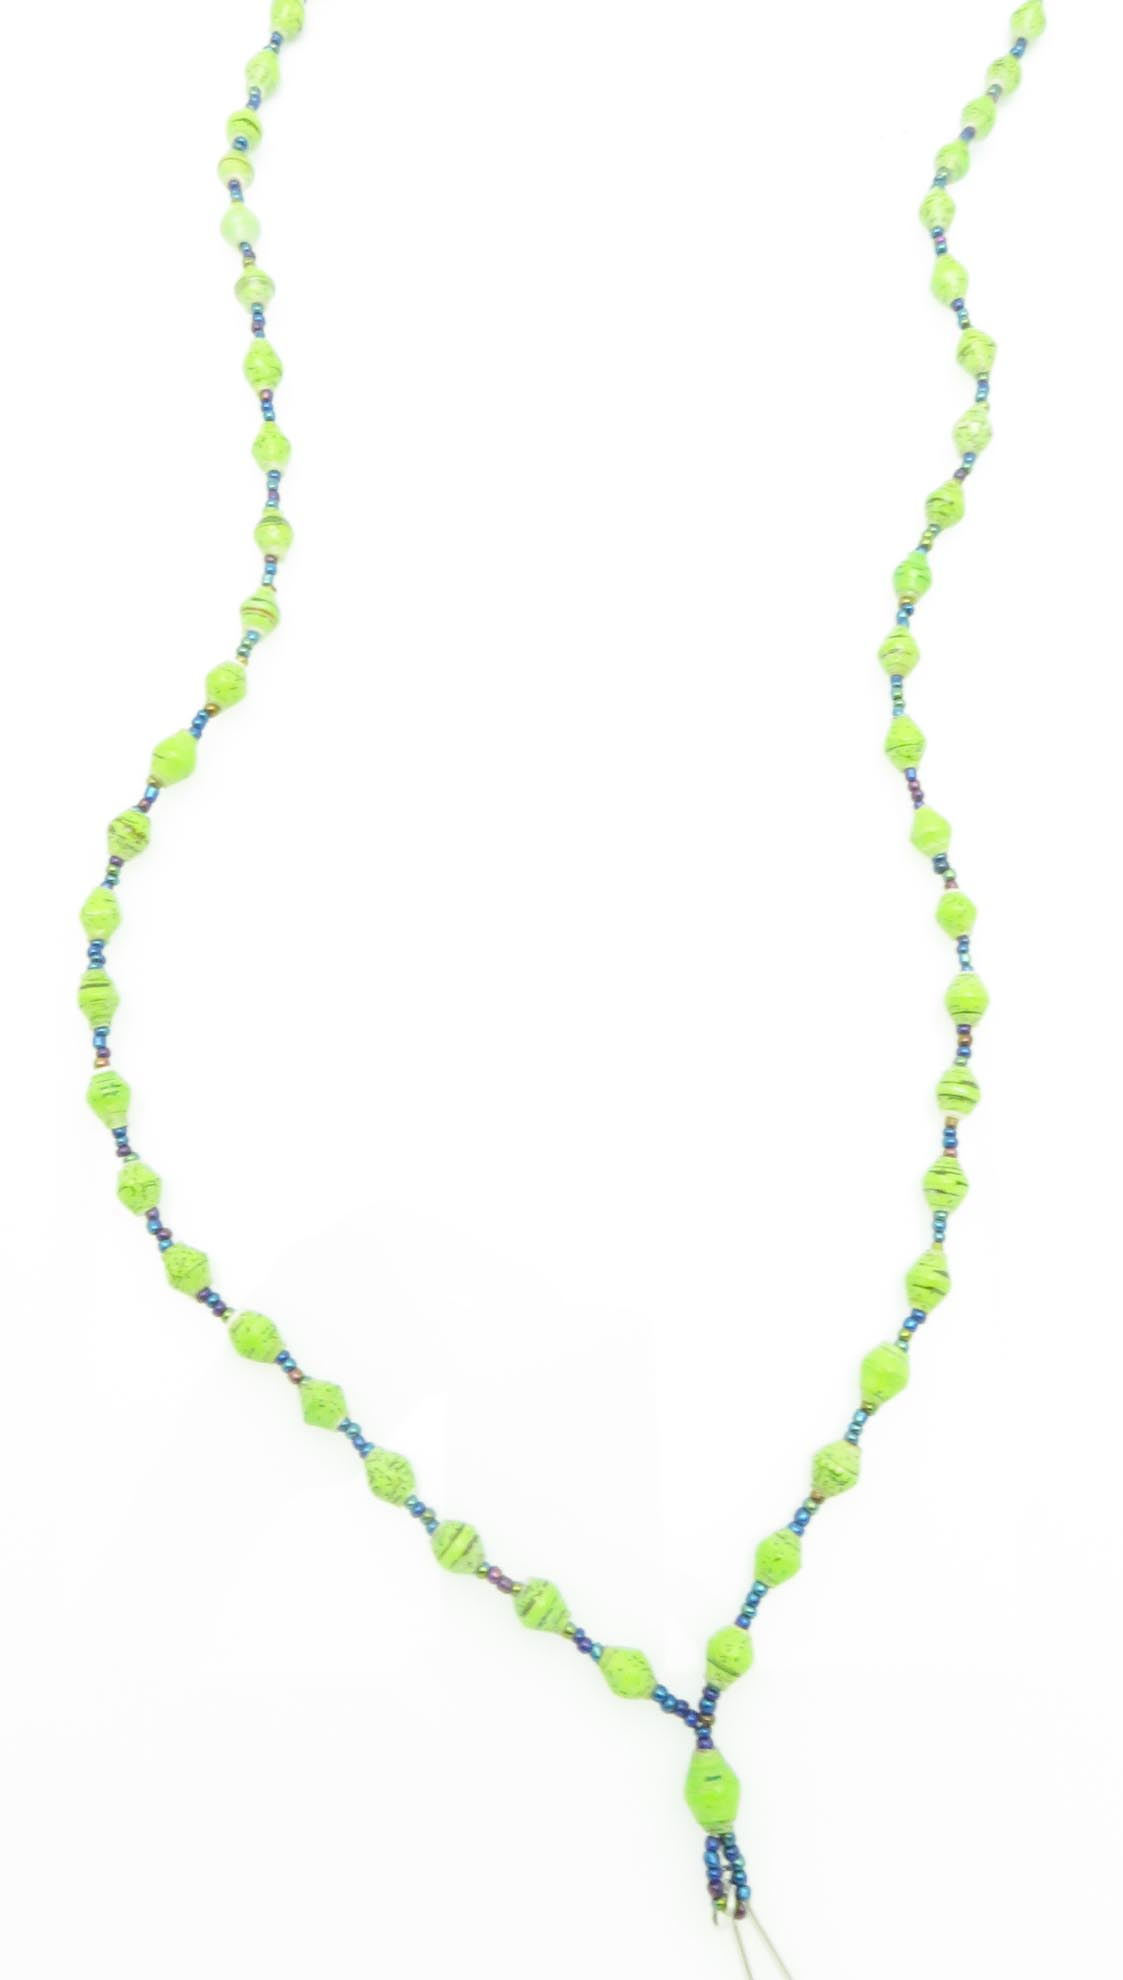 Lanyard - lime green